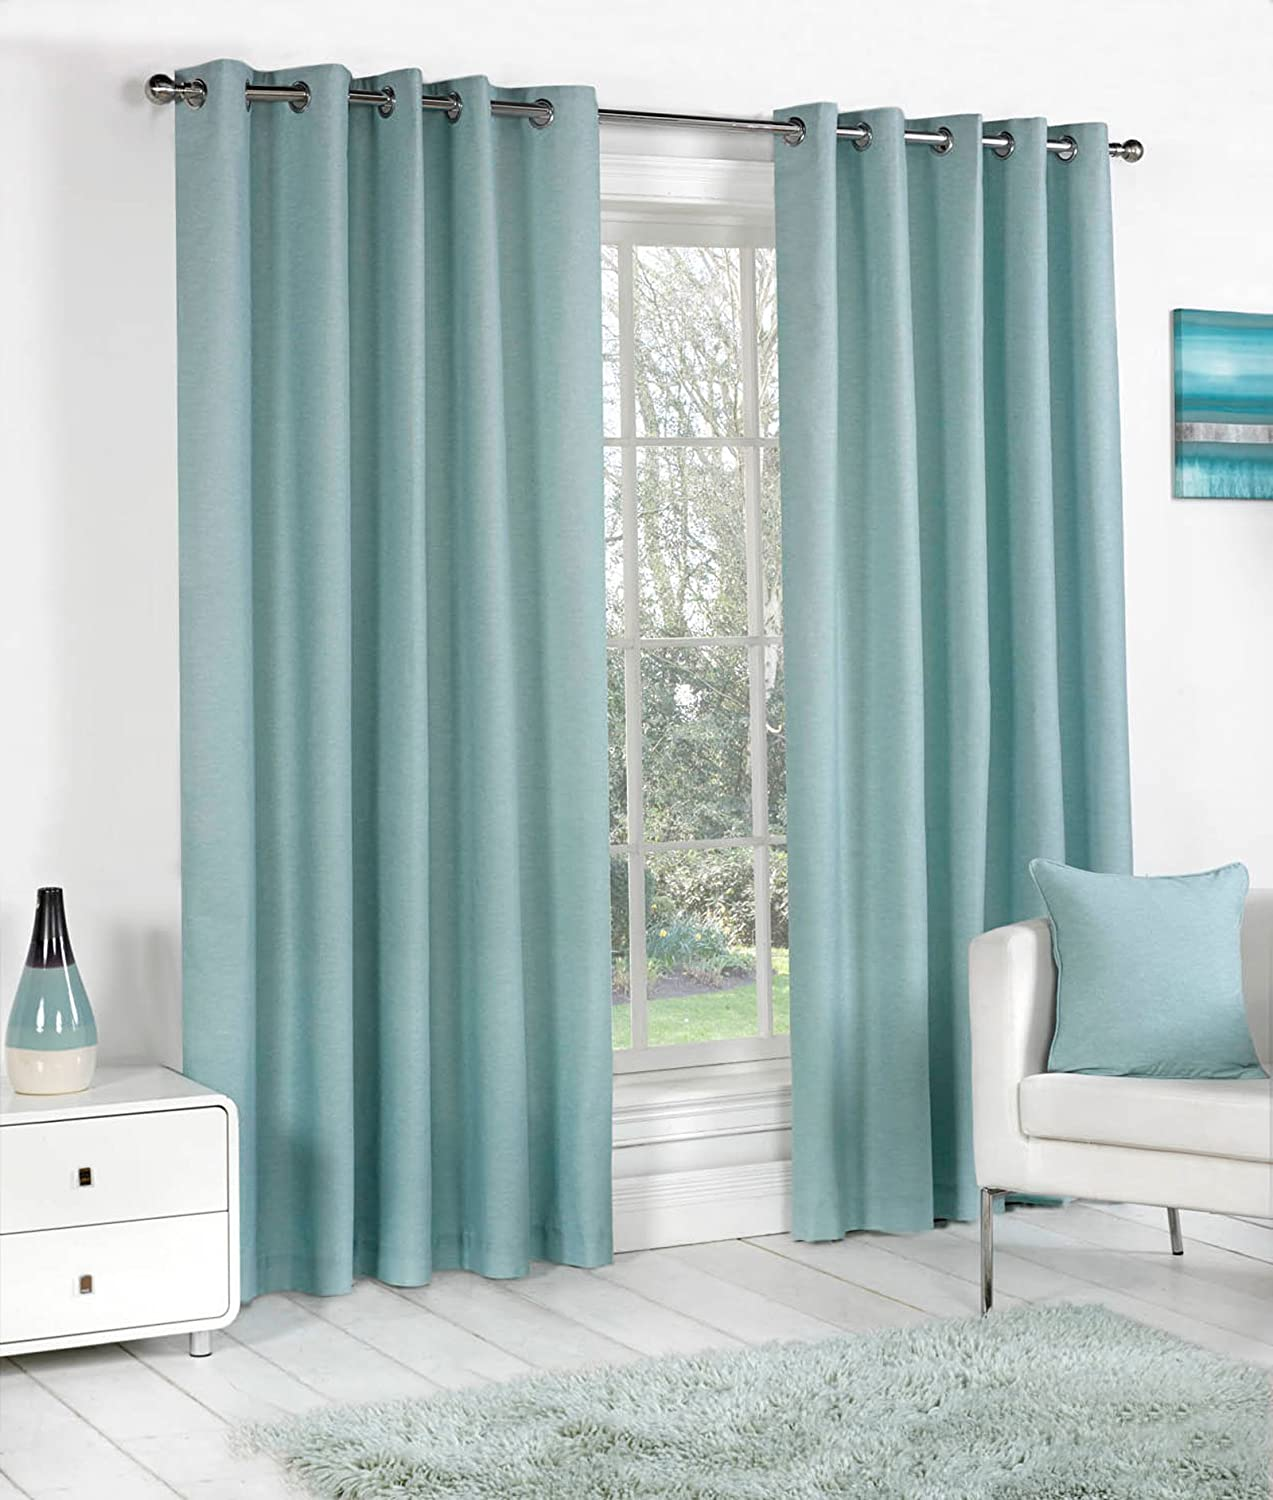 QPC Direct Plain Fully Lined Heavy Cotton Eyelet Ring Top Curtains Duck Egg 46 X 54 117 137cm Amazoncouk Kitchen Home